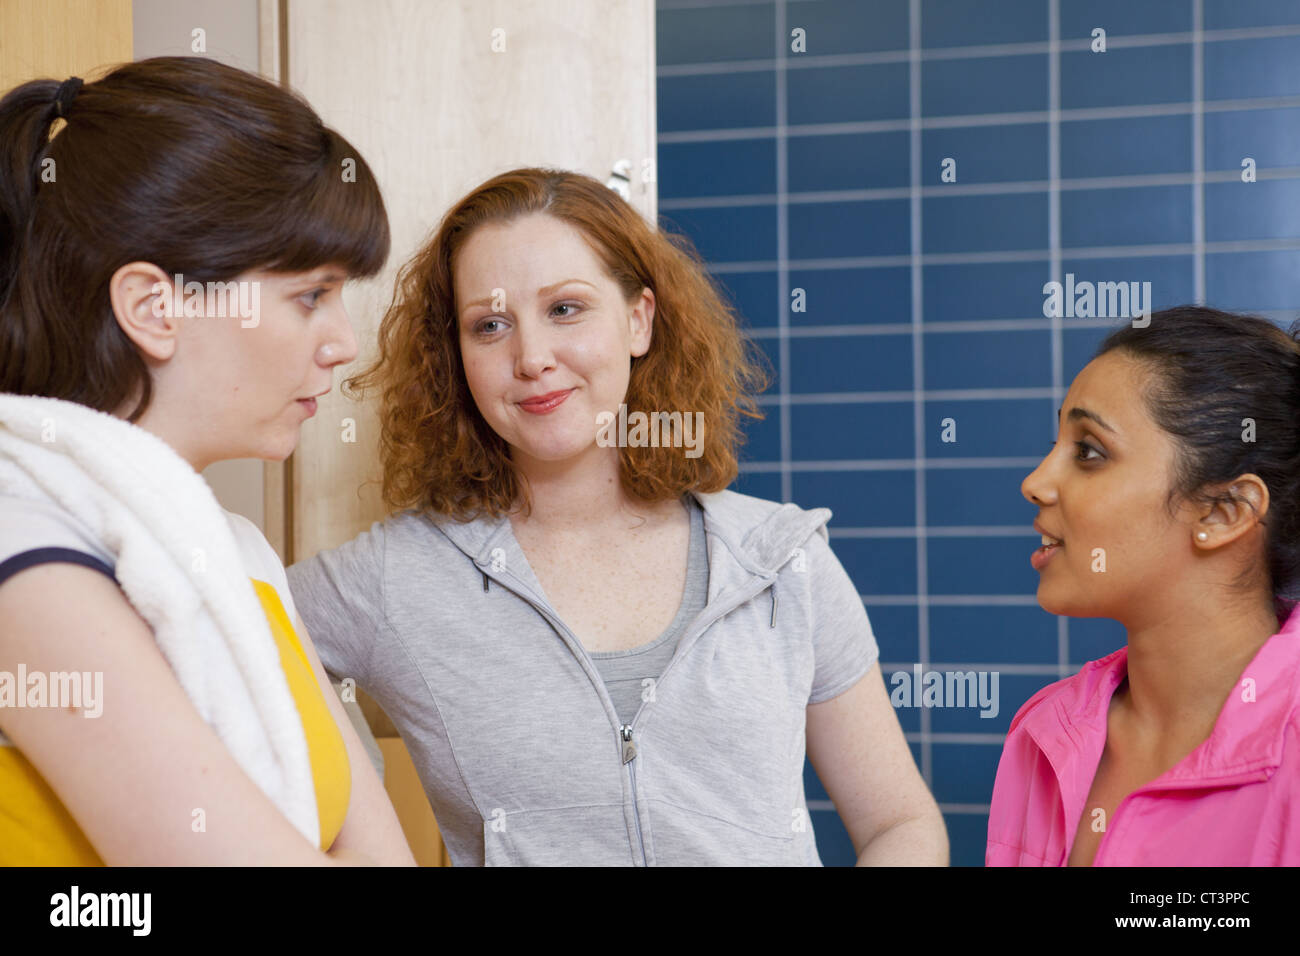 Women talking in locker room - Stock Image